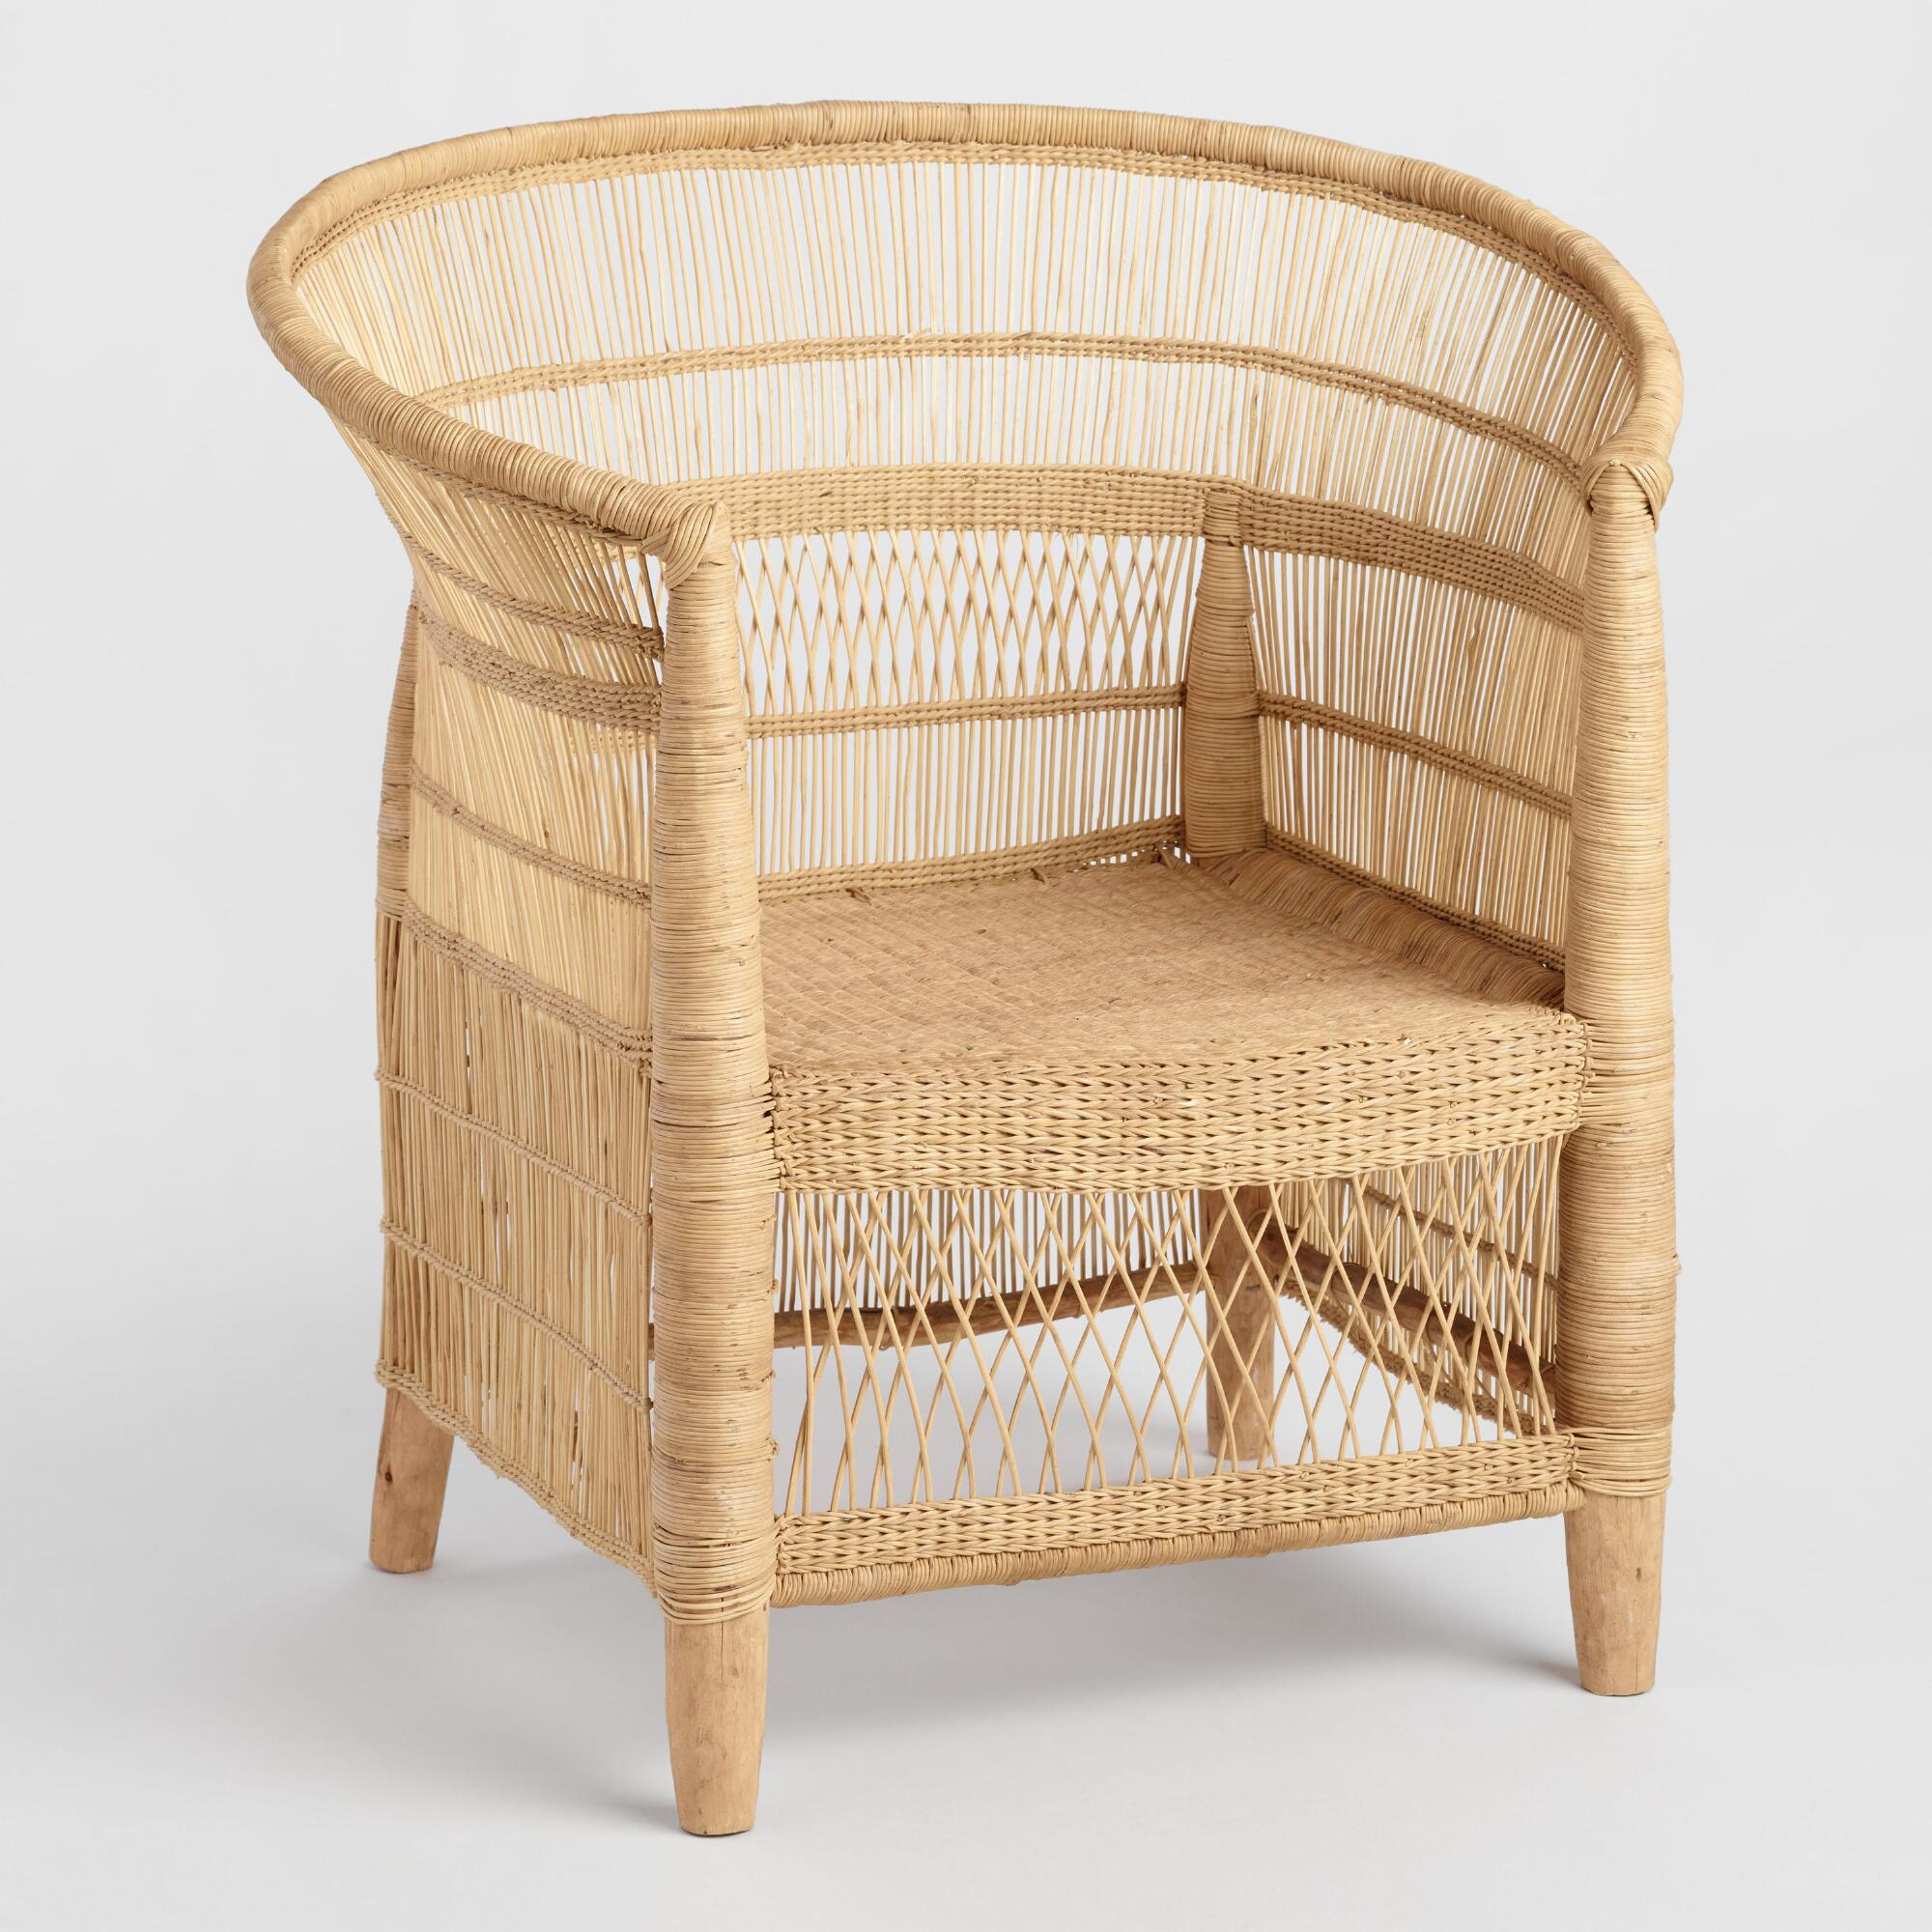 Malawi Wicker Chair by World Market